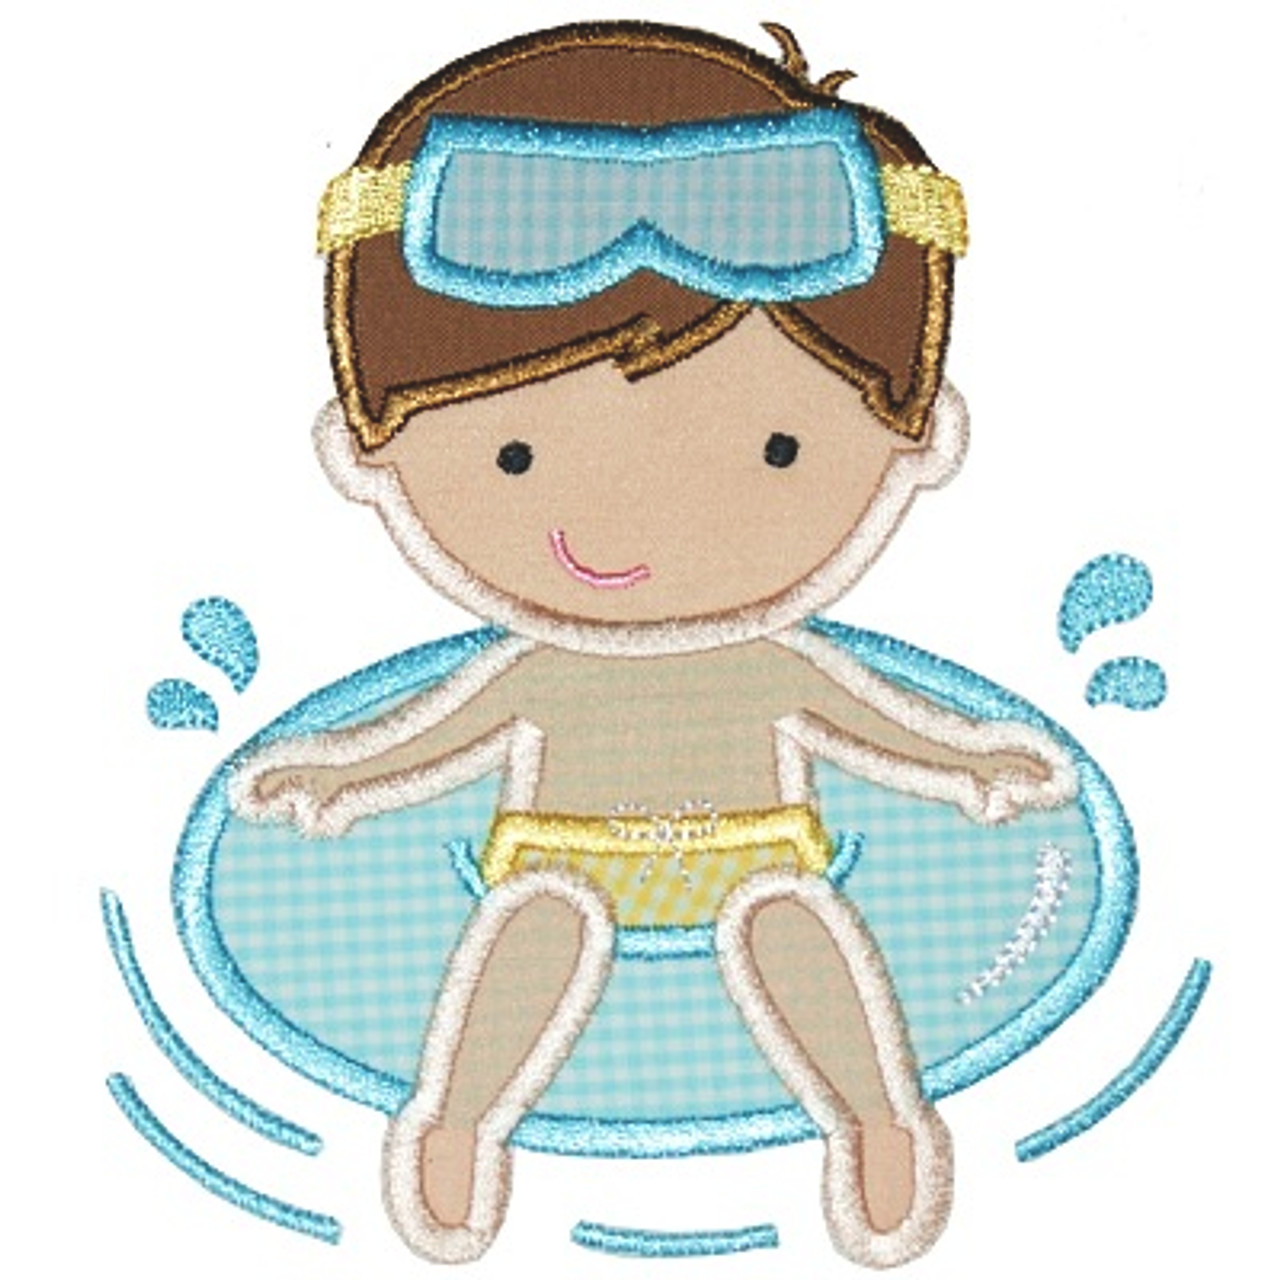 Swimming Pool Party Child PNG, Clipart, Area, Arm, Beach, Boy, Cartoon Free  PNG Download